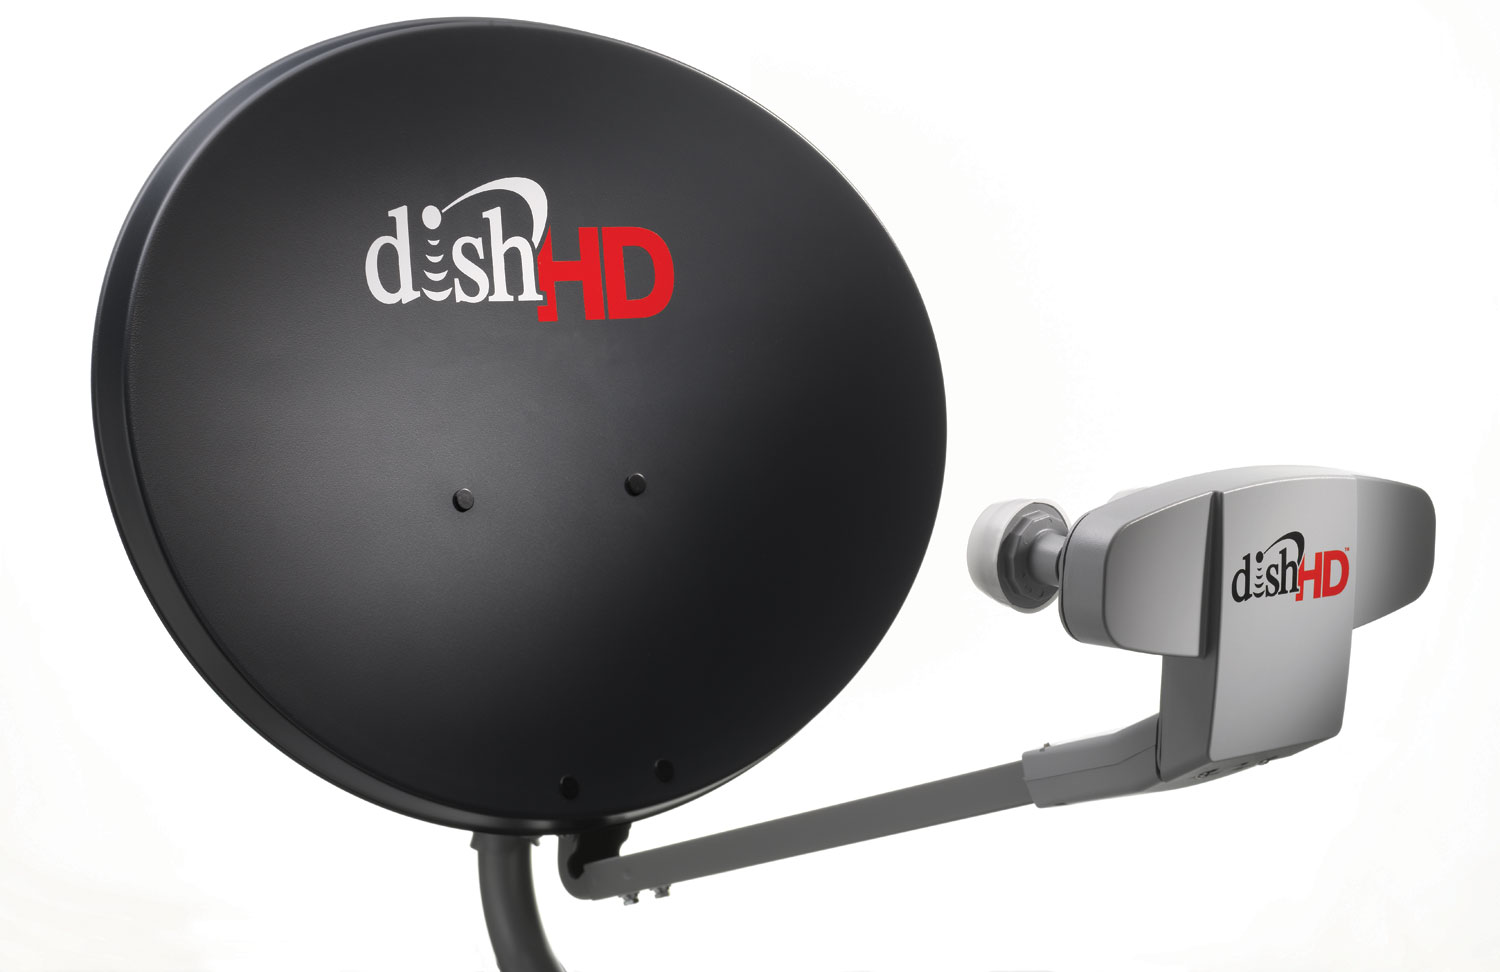 Tense Negotiations Between Dish Network & Hearst Television